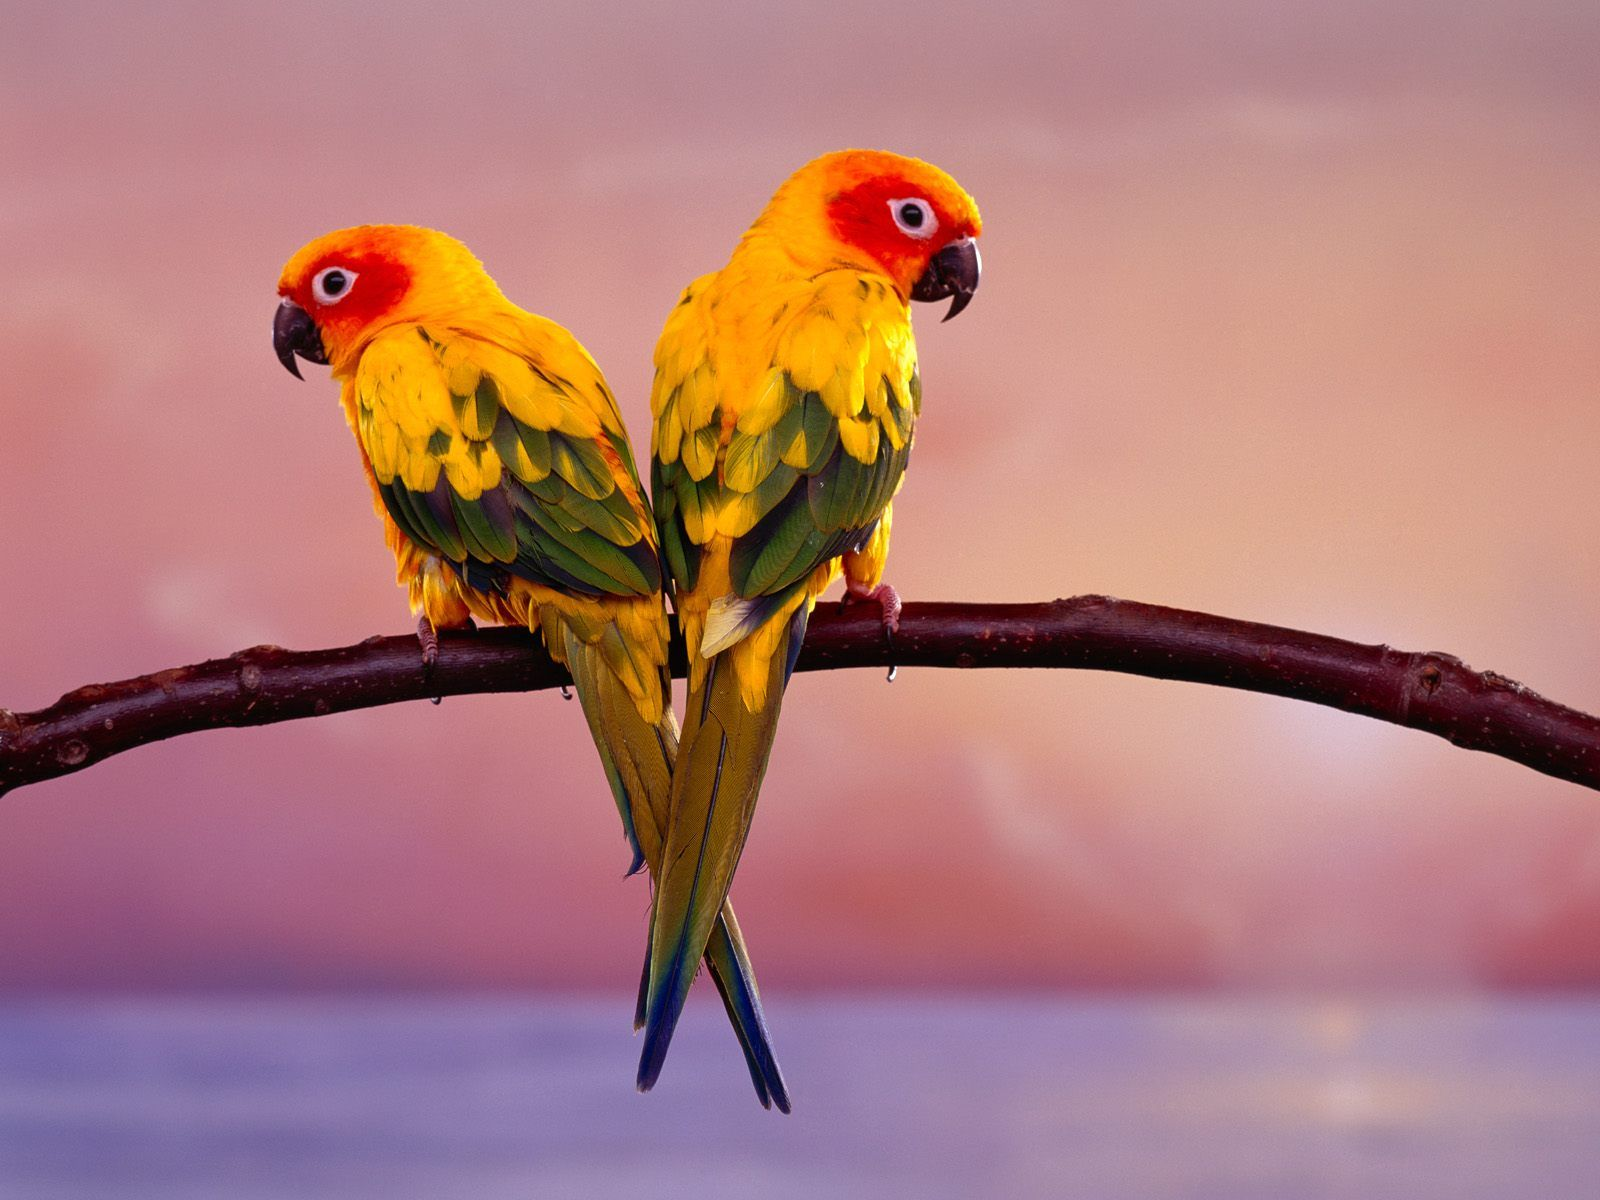 bright colored parrots wallpaper from beautiful birds this is a beautiful wallpaper these two parrots seem to be in perfect pose to have their picture